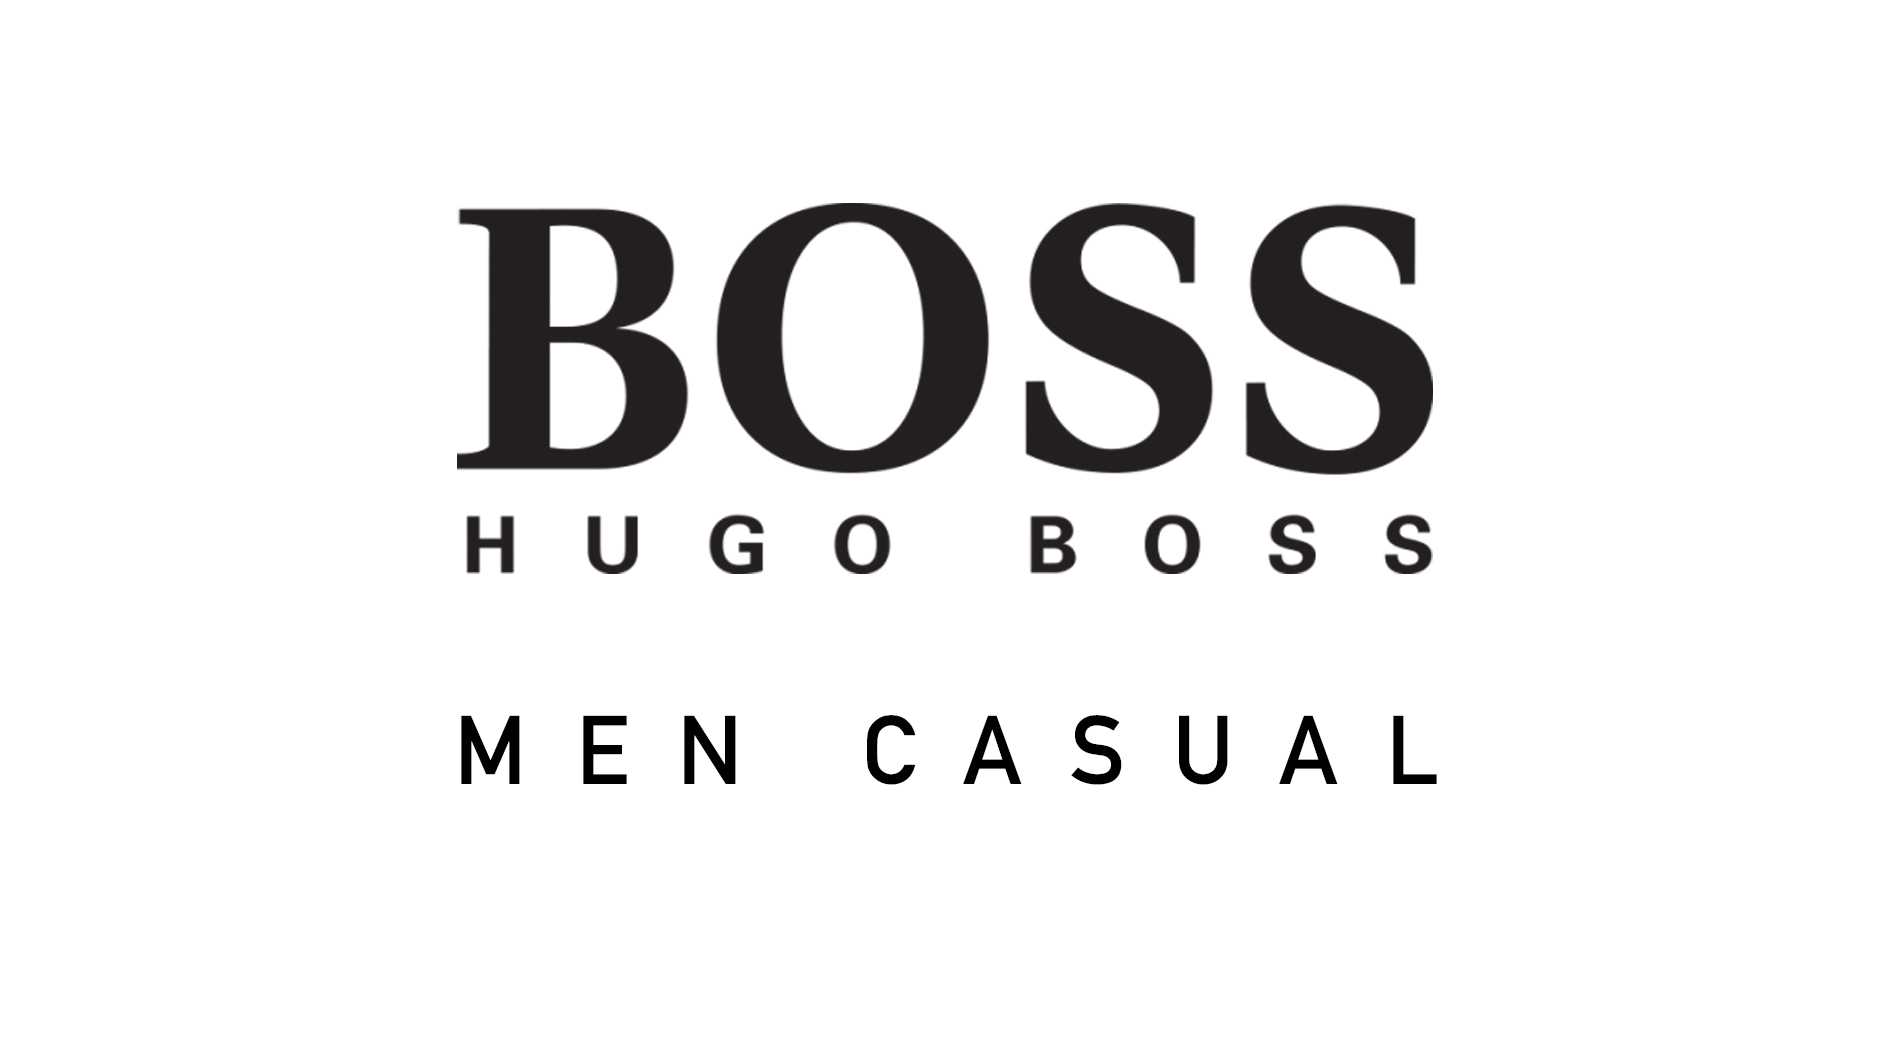 hugo-boss men casual.jpg